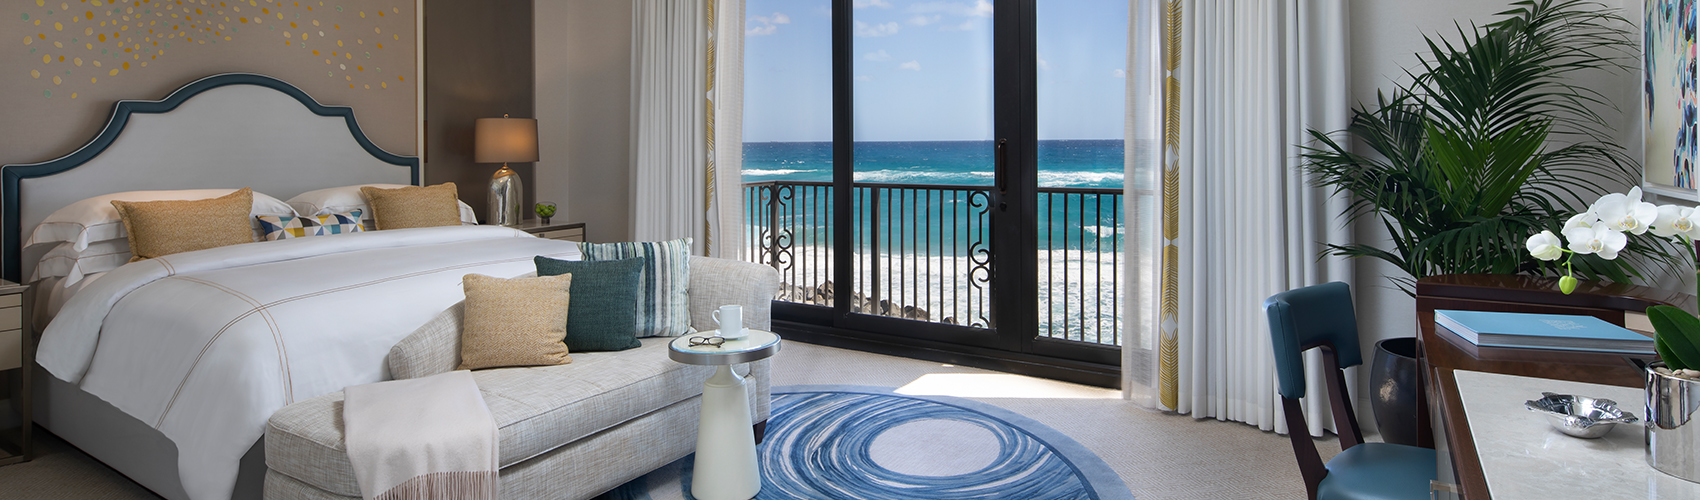 Executive Suite with Ocean View Bedroom